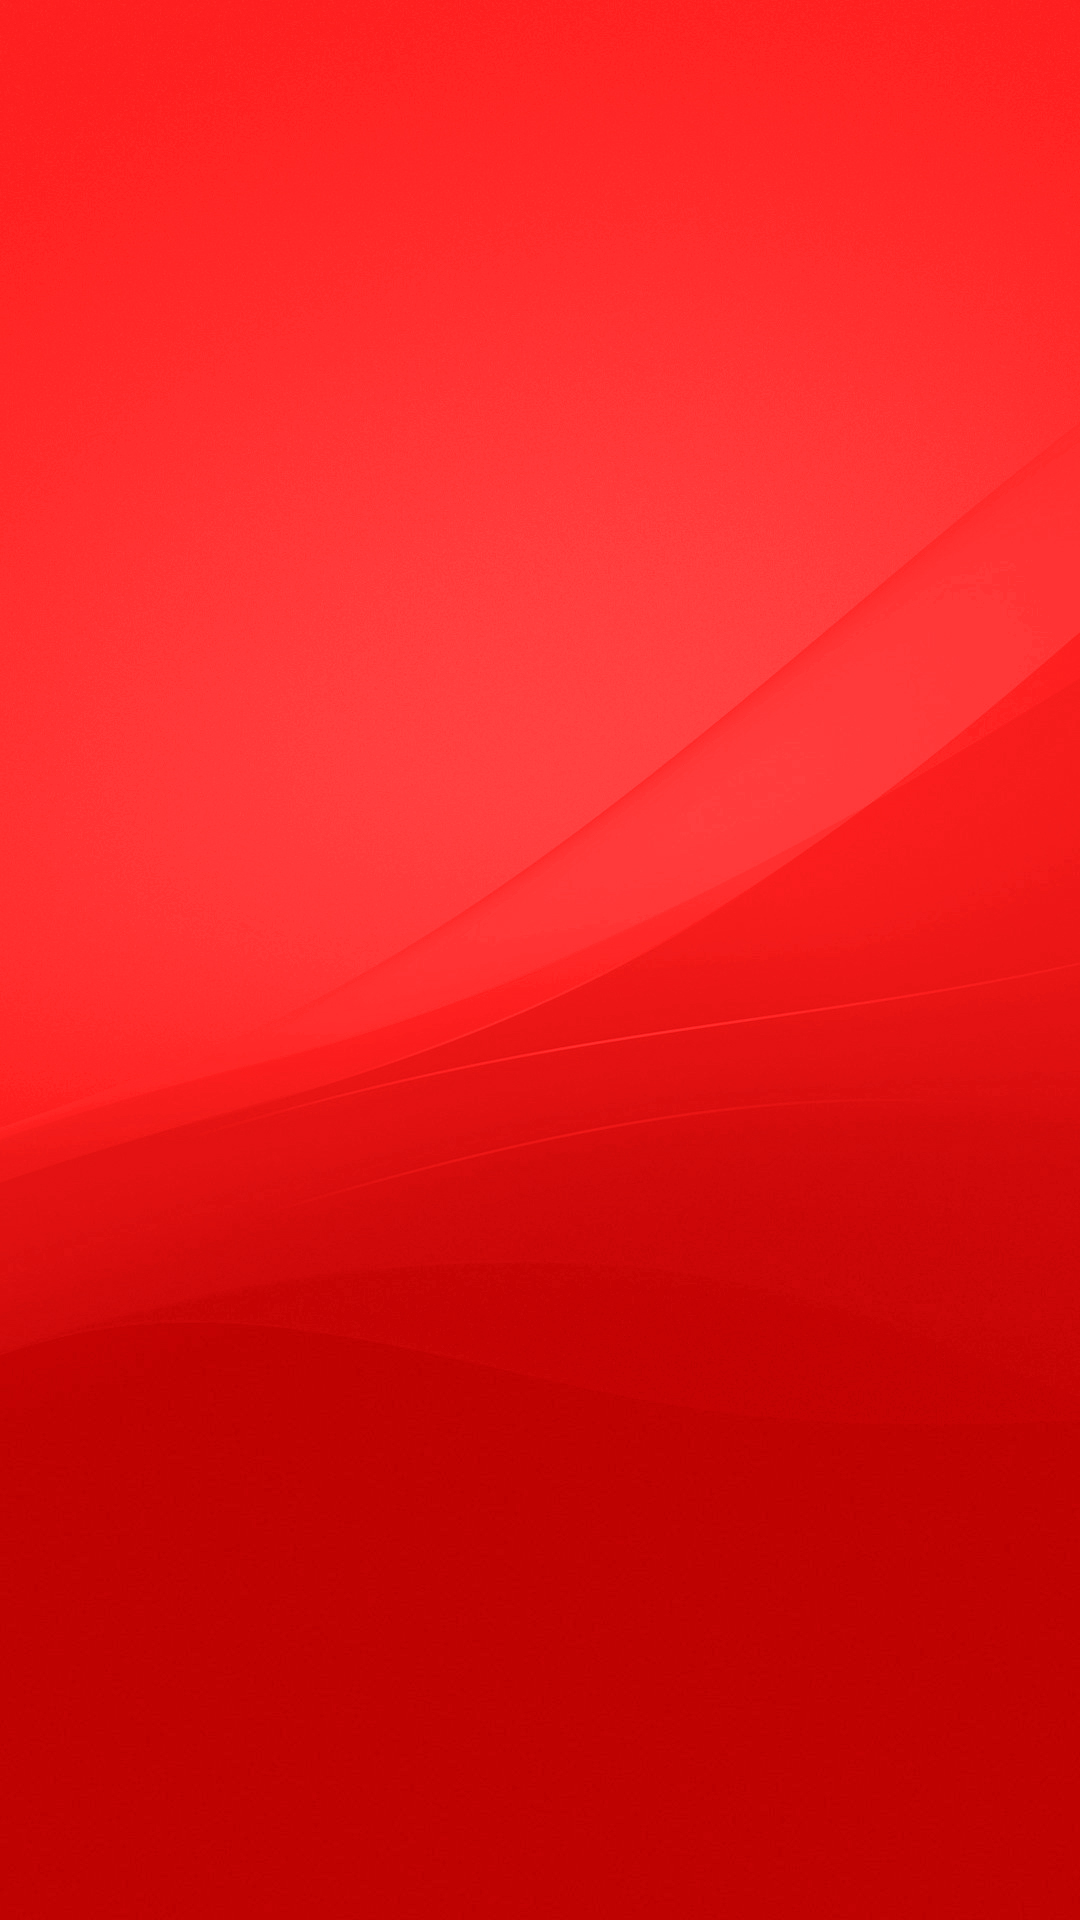 Xperia Lollipop Red Wallpaper Gizmo Bolt Exposing